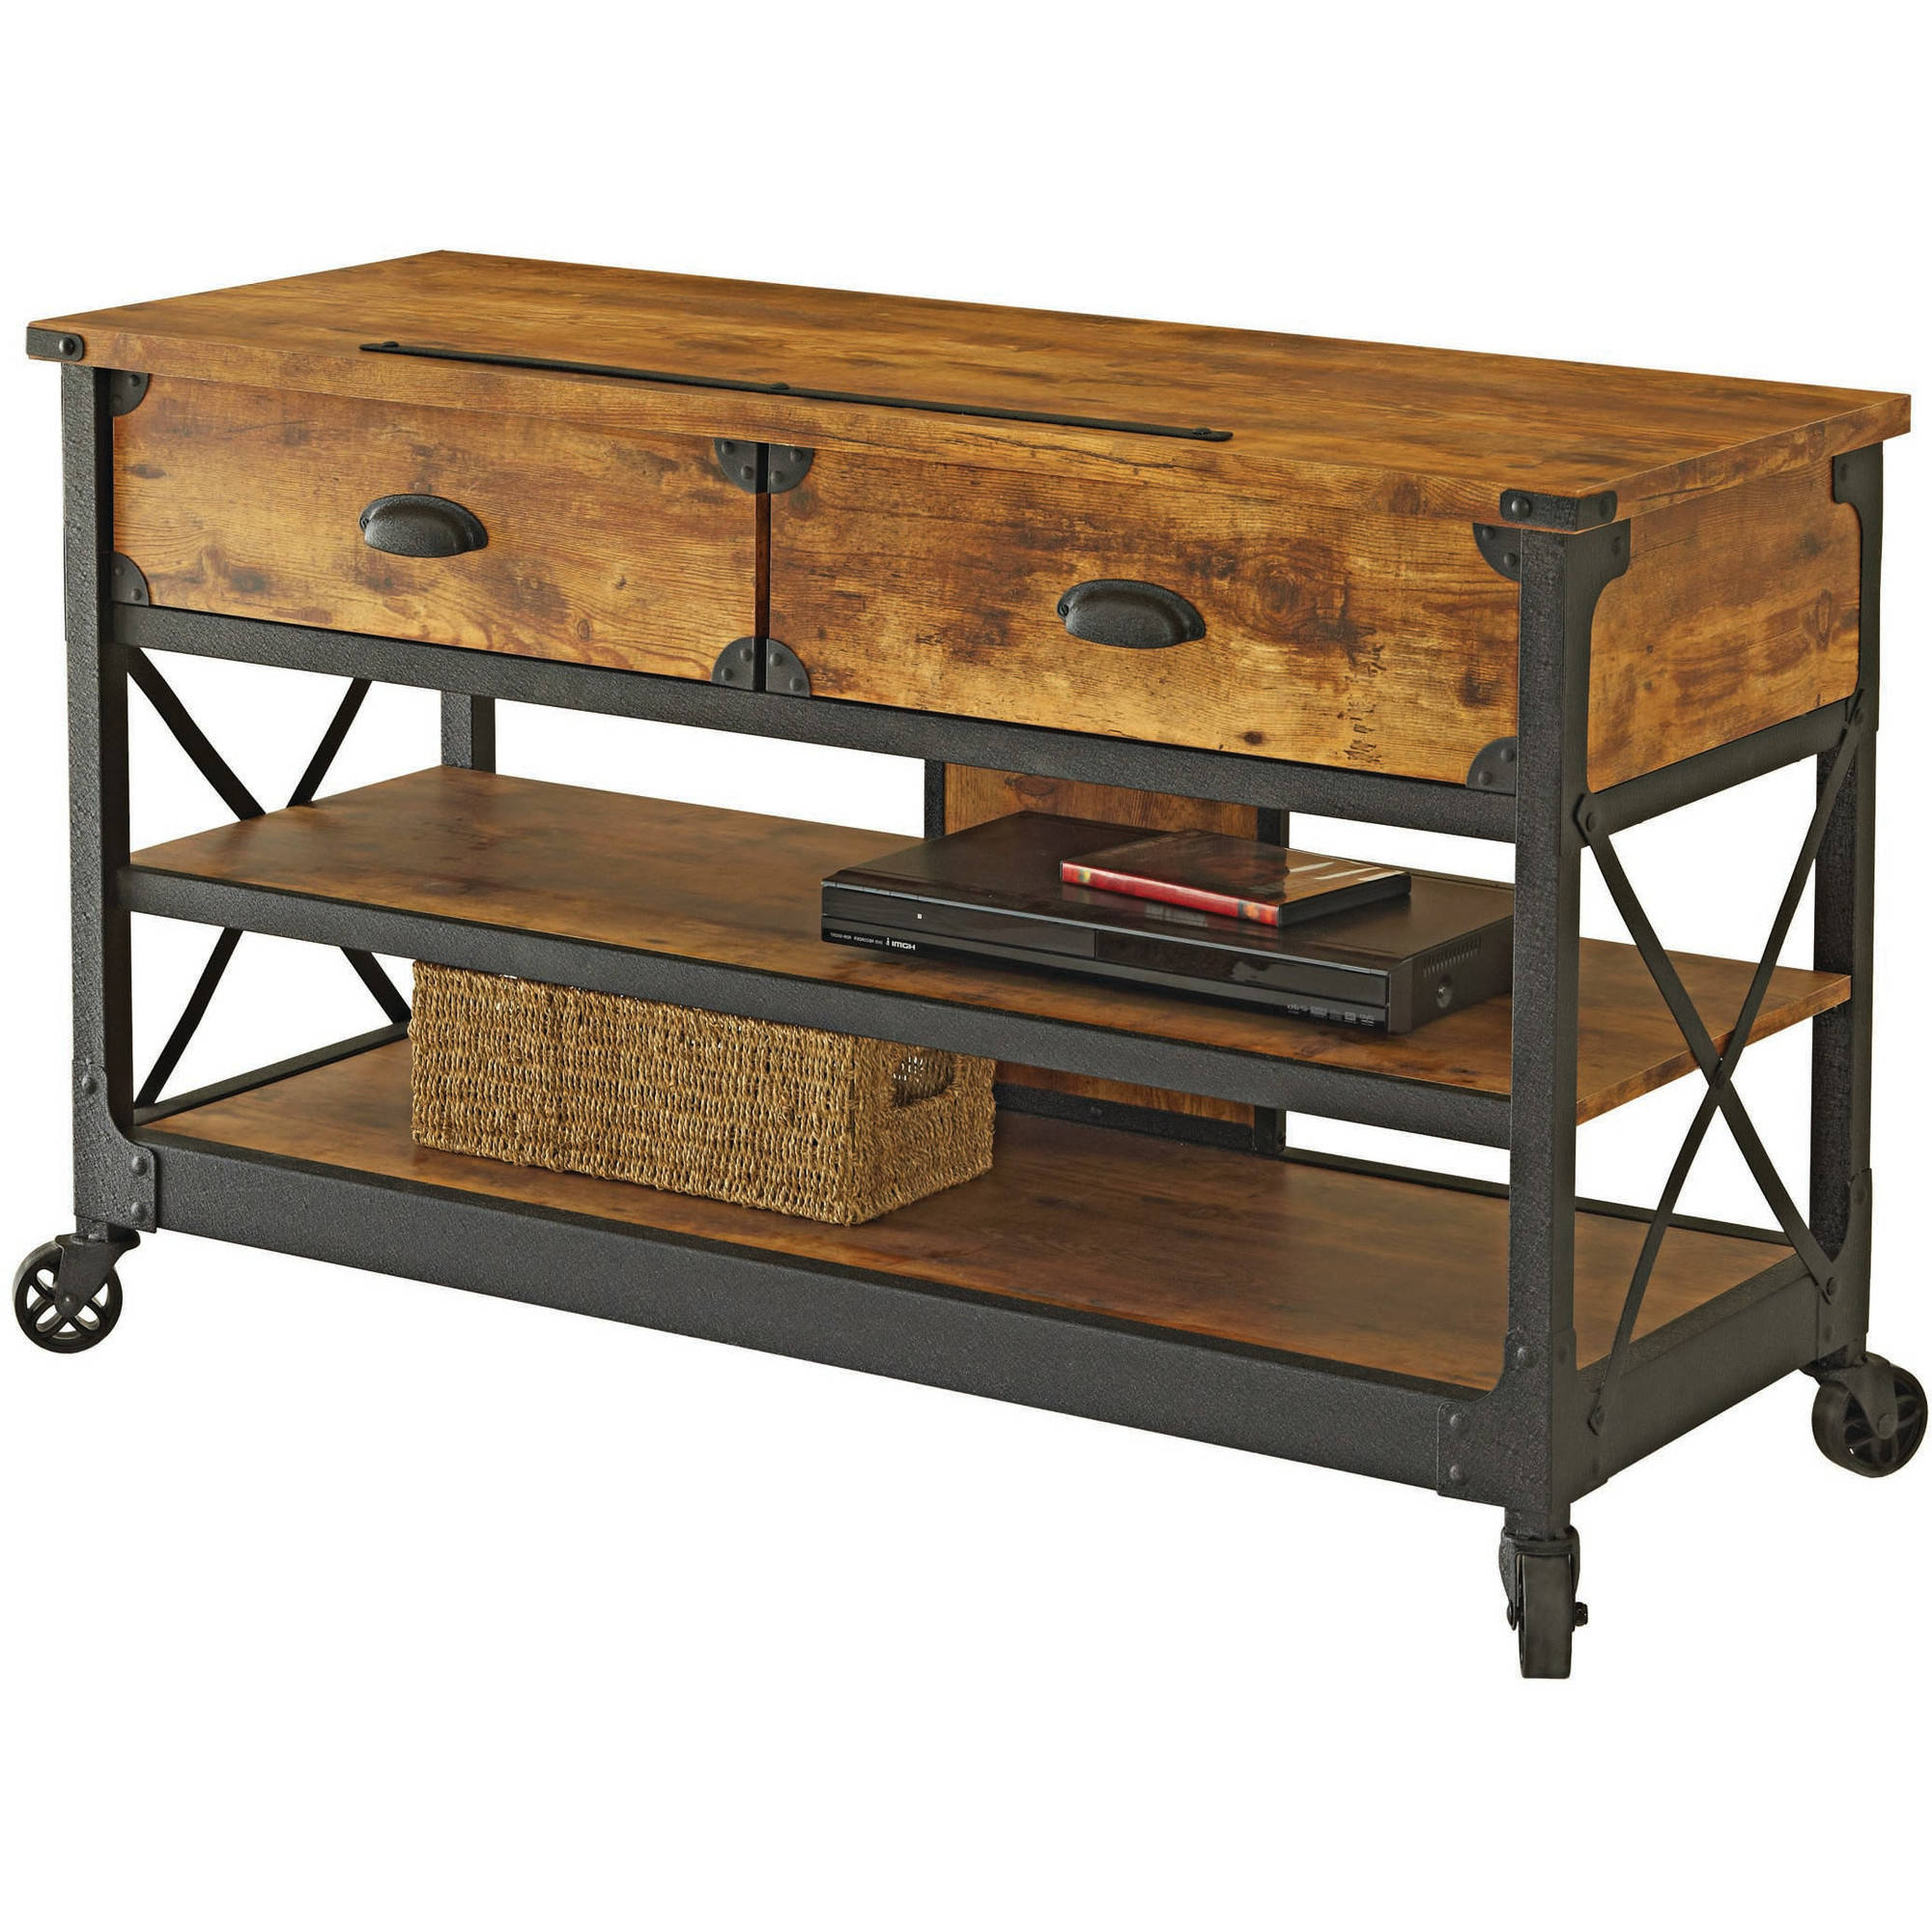 Better Homes & Gardens Rustic Country Tv Stand For Tvs Up To 52 Inside Most Current Rustic Tv Stands (Gallery 5 of 20)